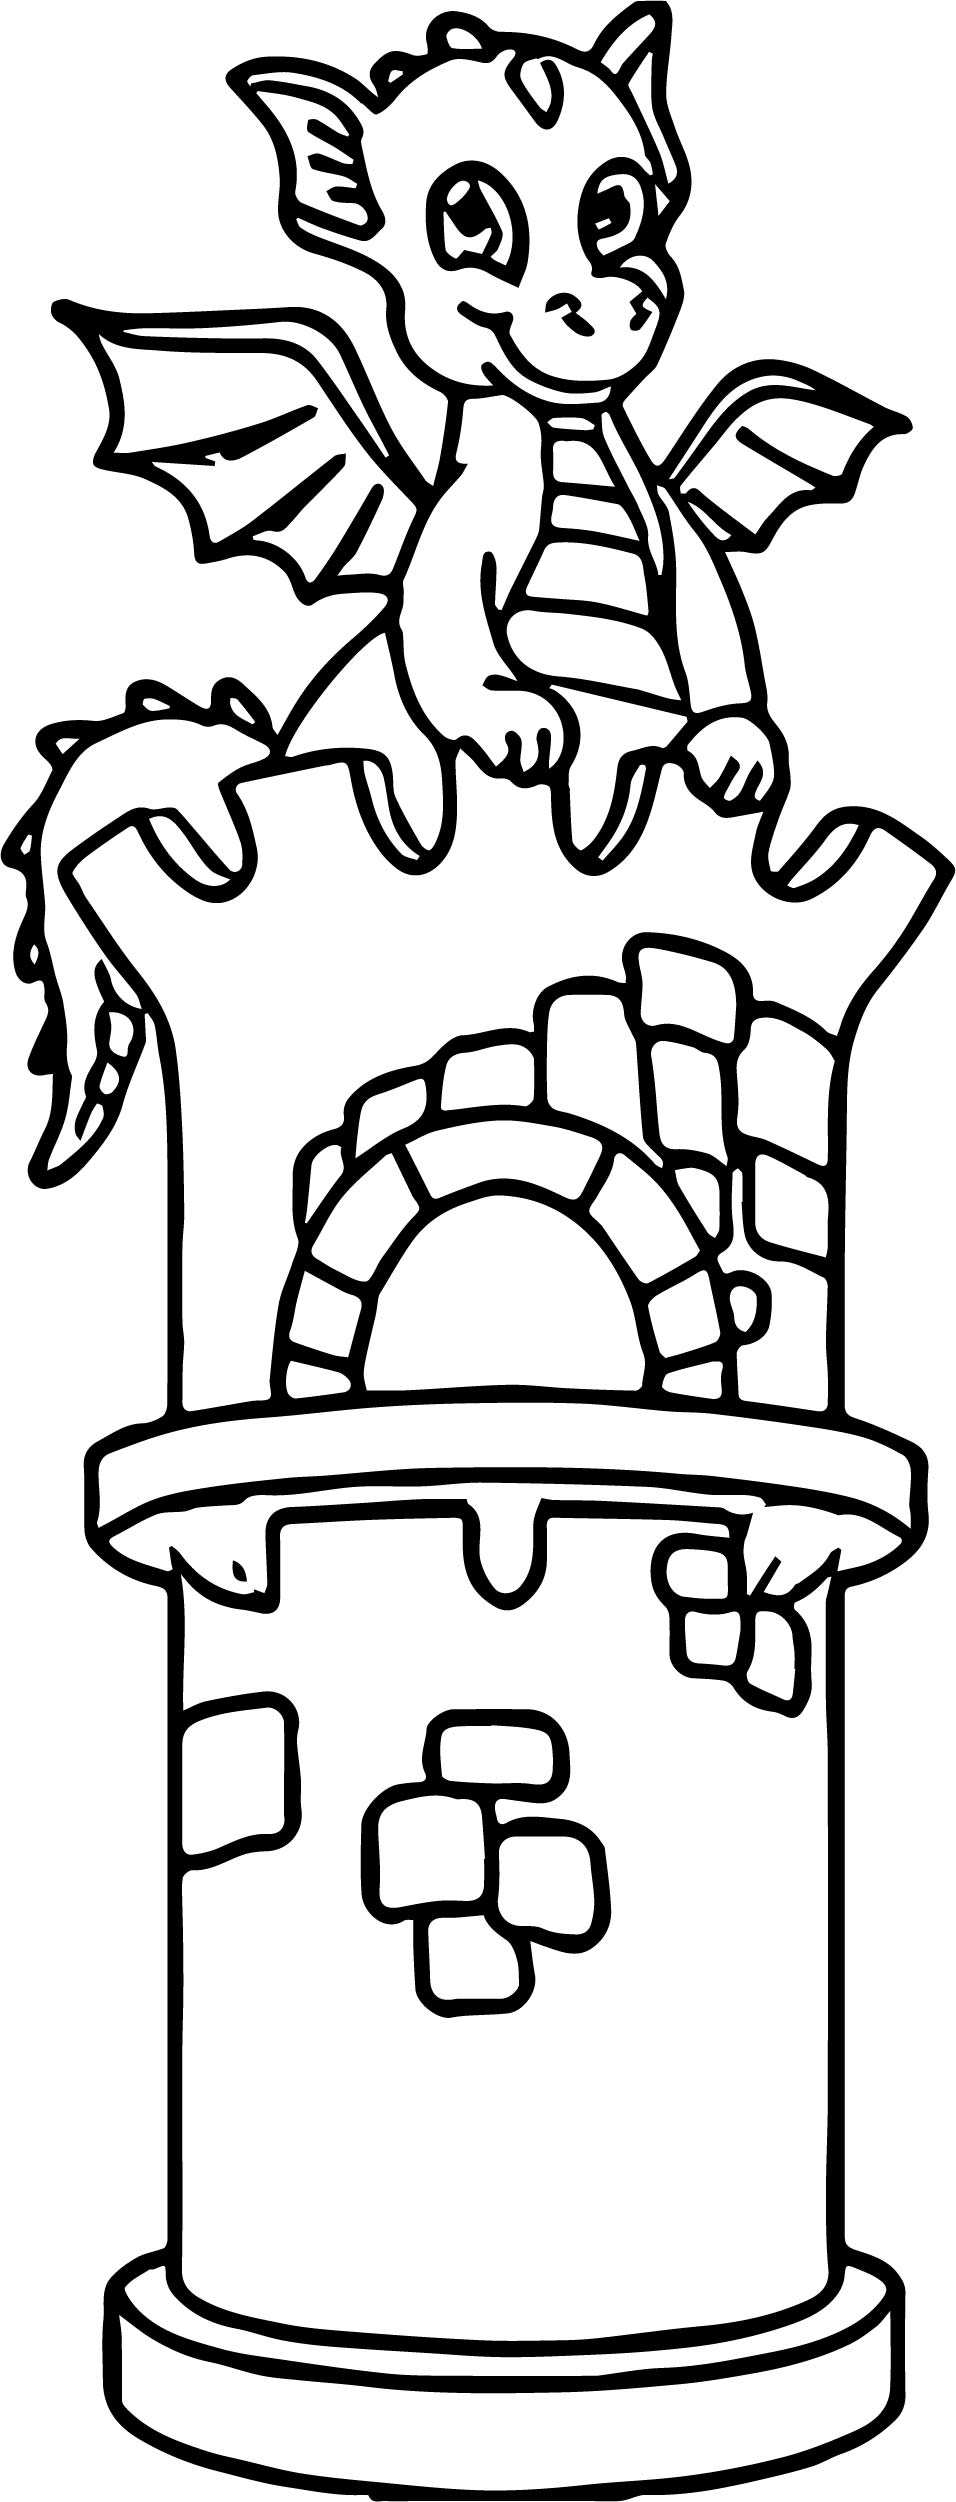 Dragon front castle coloring page for Dragon and castle coloring pages